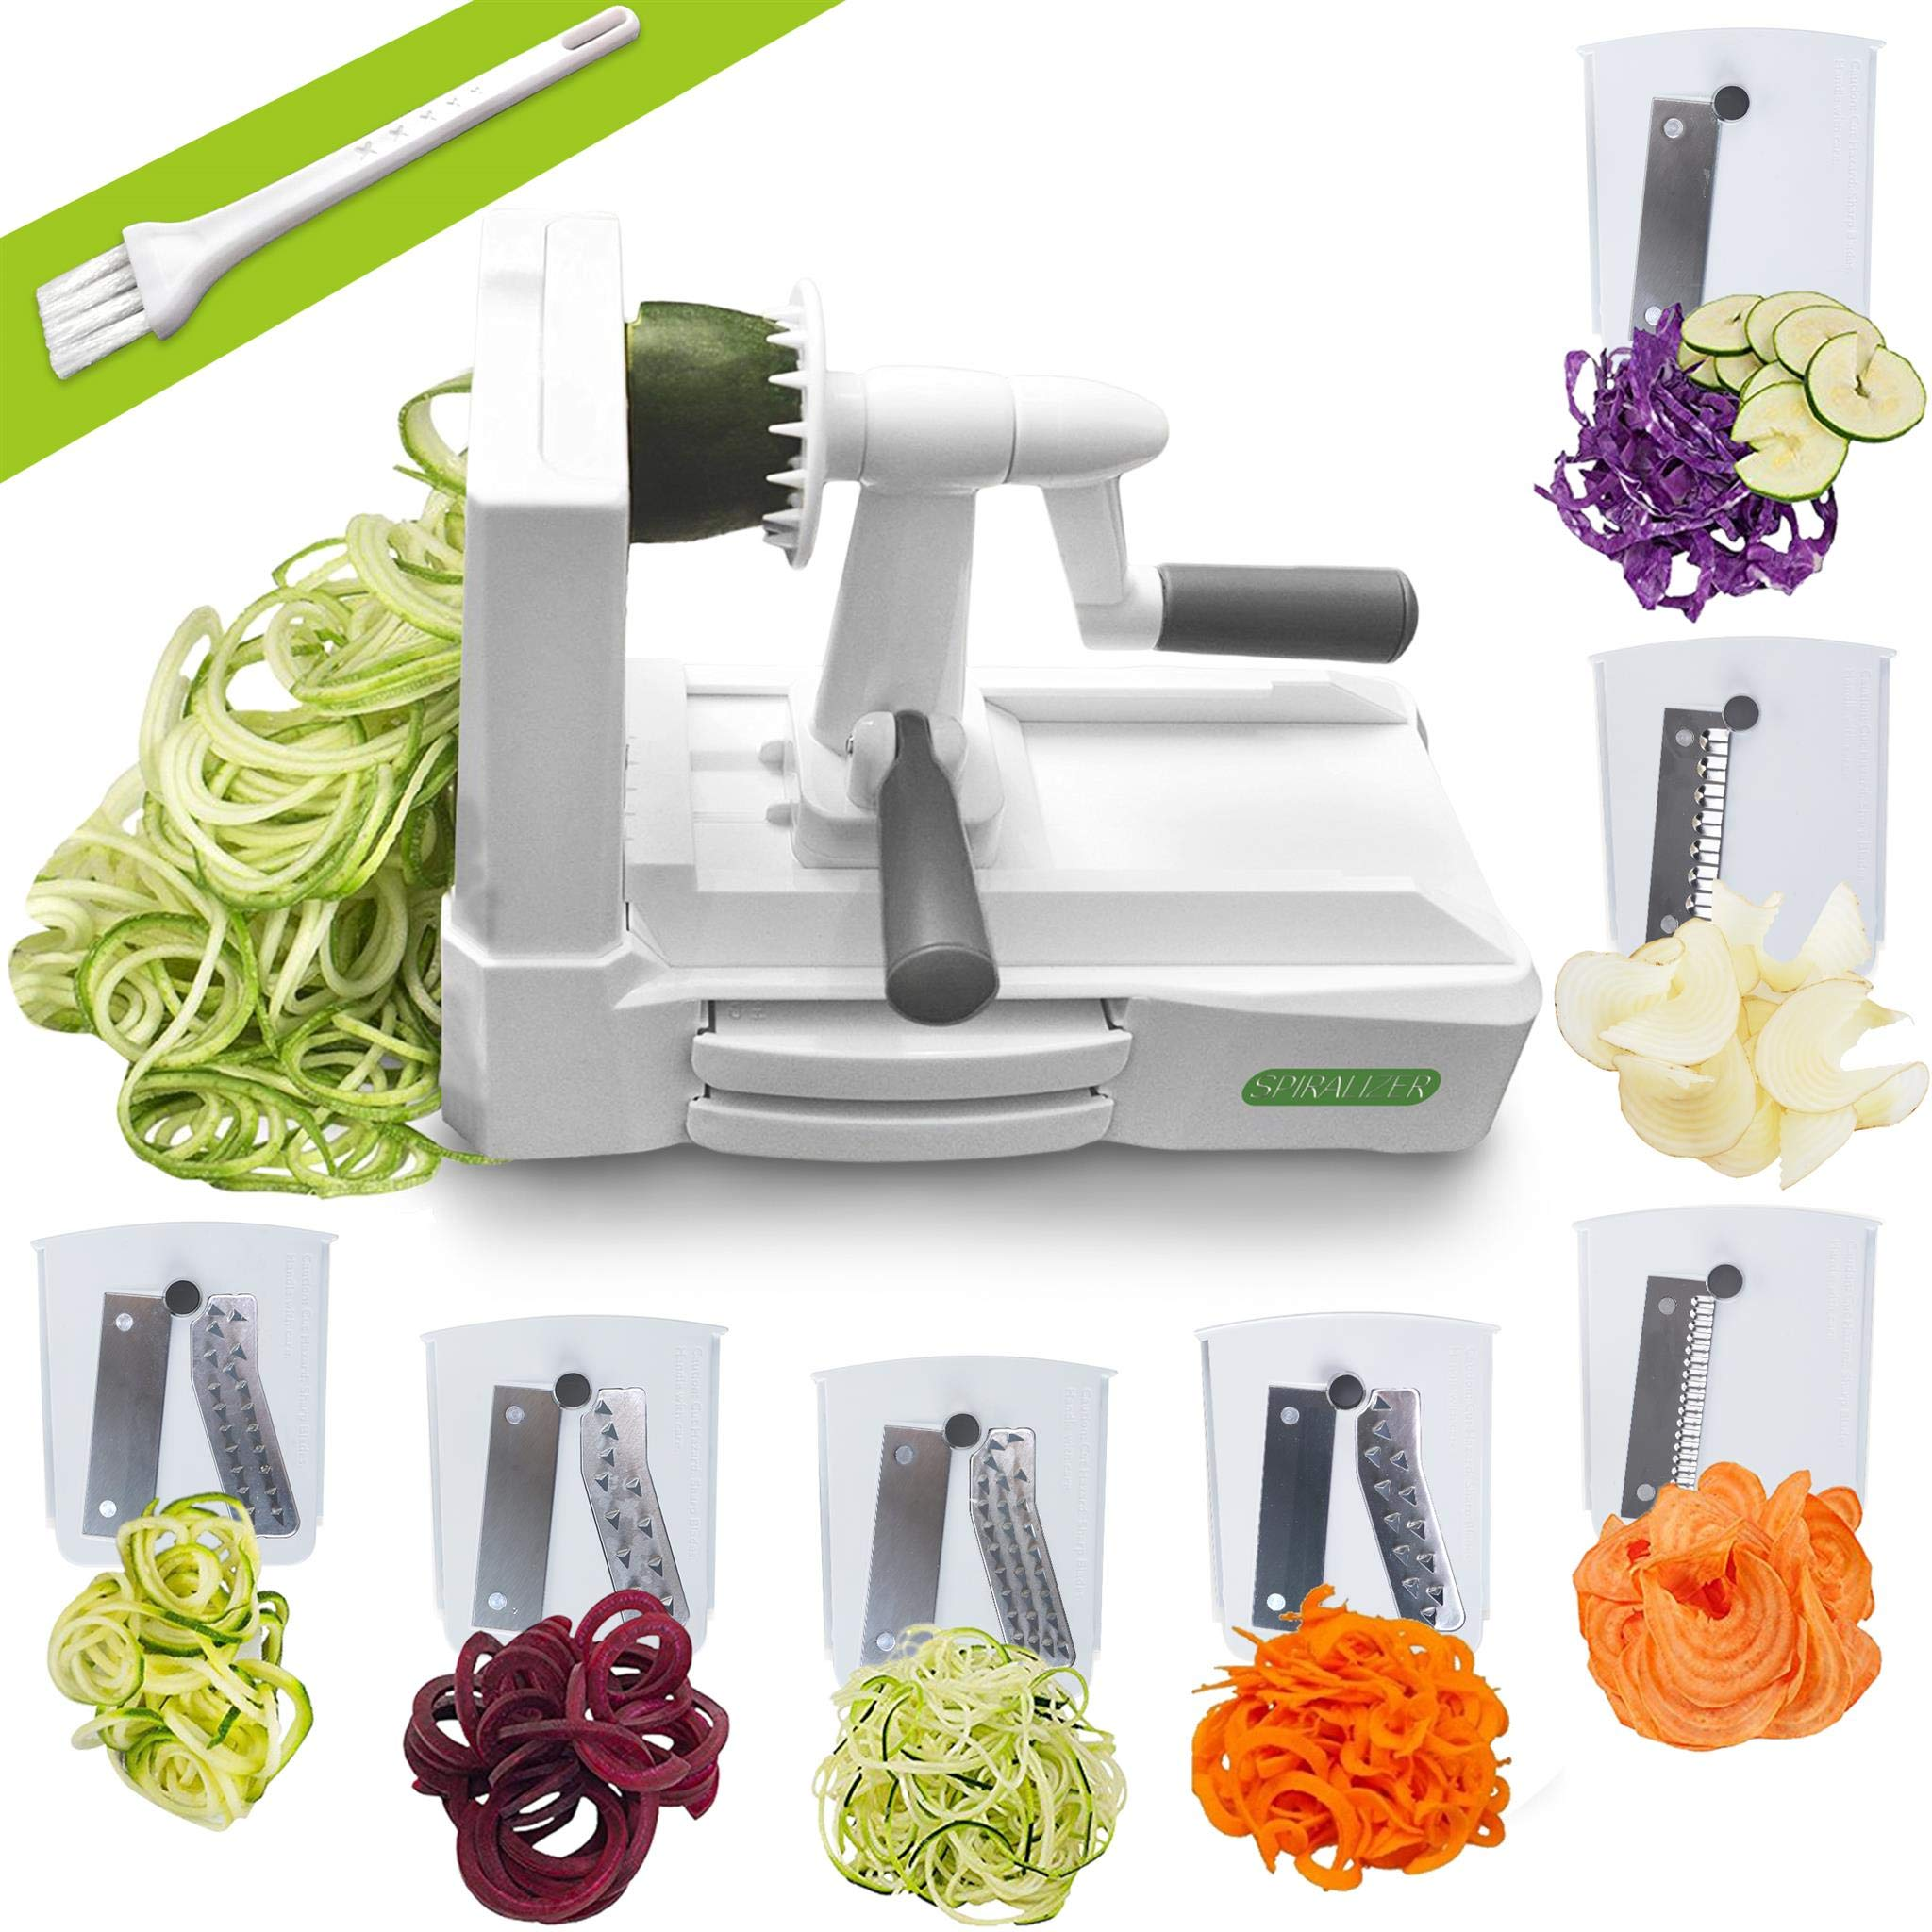 Spiralizer Ultimate 7-Blade Vegetable Slicer, Strongest-and-Heaviest Duty Vegetable Spiral Slicer, Best Veggie Pasta Spaghetti Maker for Keto/Paleo/Gluten-Free, With Extra Blade Caddy & 4 Recipe Ebook by Spiralizer